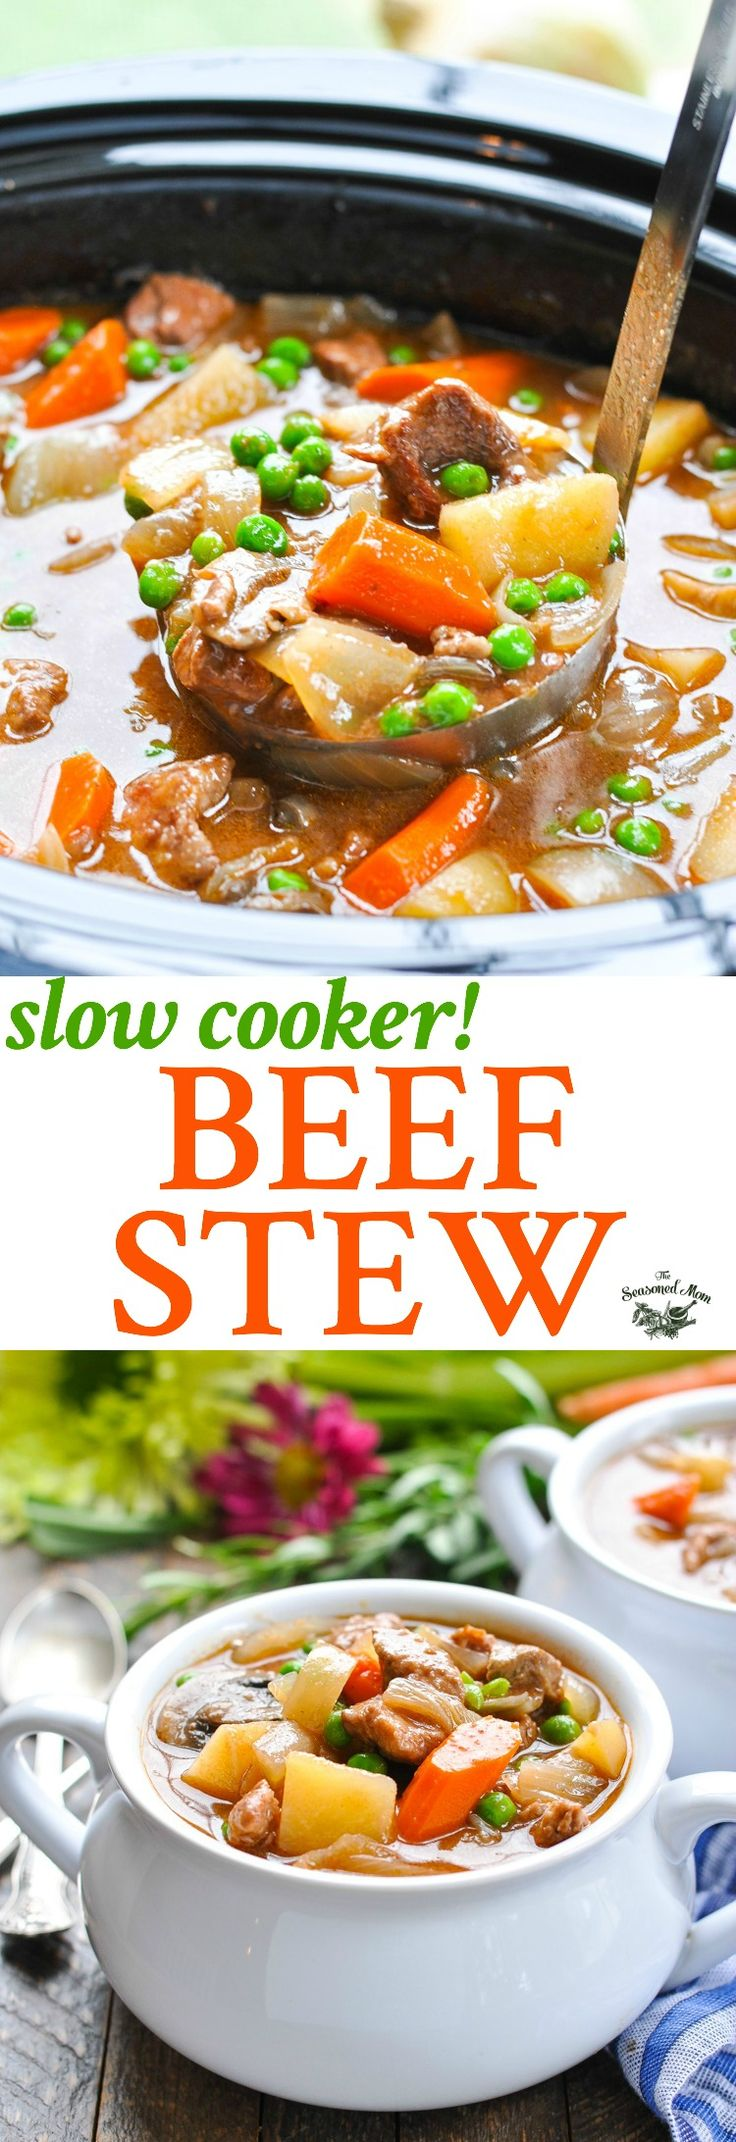 This classic Farmhouse Slow Cooker Beef Stew is an easy one pot meal that simmers on the counter all day while you go about your busy schedule! Slow Cooker Recipes Healthy | Beef Recipes | Easy Dinner Recipes | Healthy Dinner Ideas #beef #slowcooker #dinner